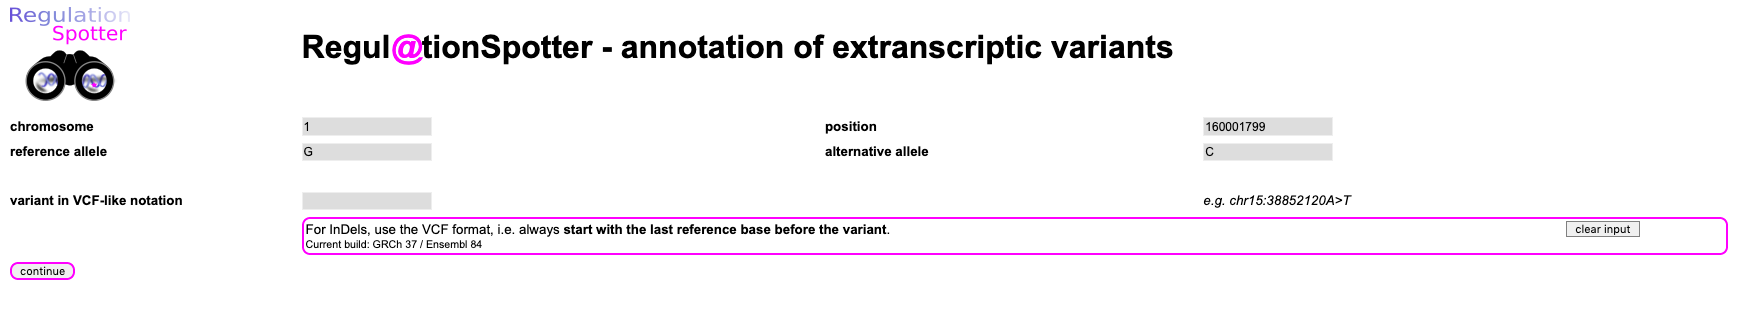 Screenshot of the input for querying a single variant